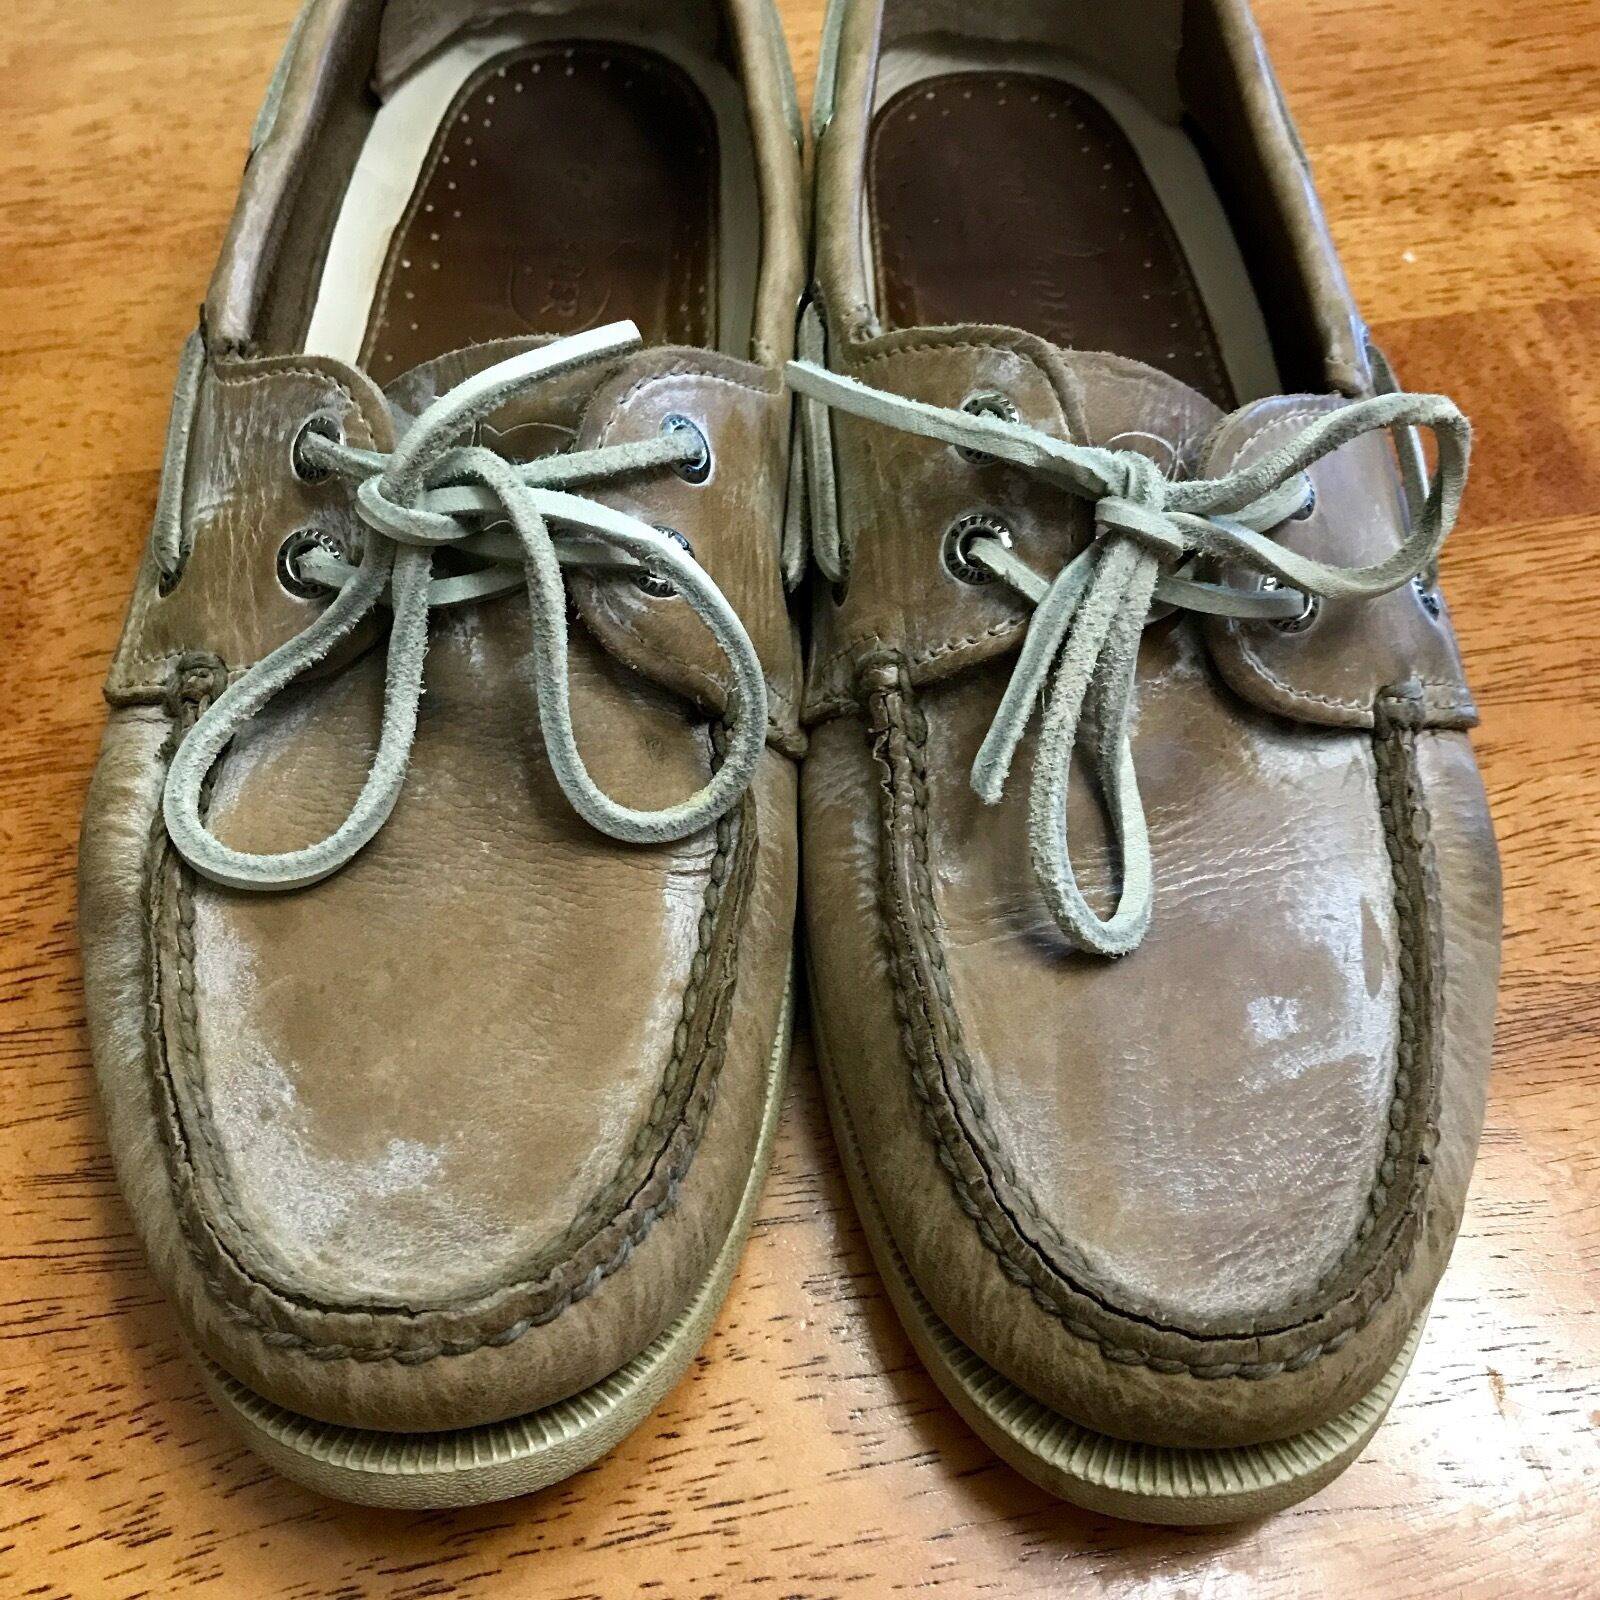 Scarpe casual da uomo uomos Sperry Top-Sider Sun Washed/Salt Washed Boat Shoe - 10